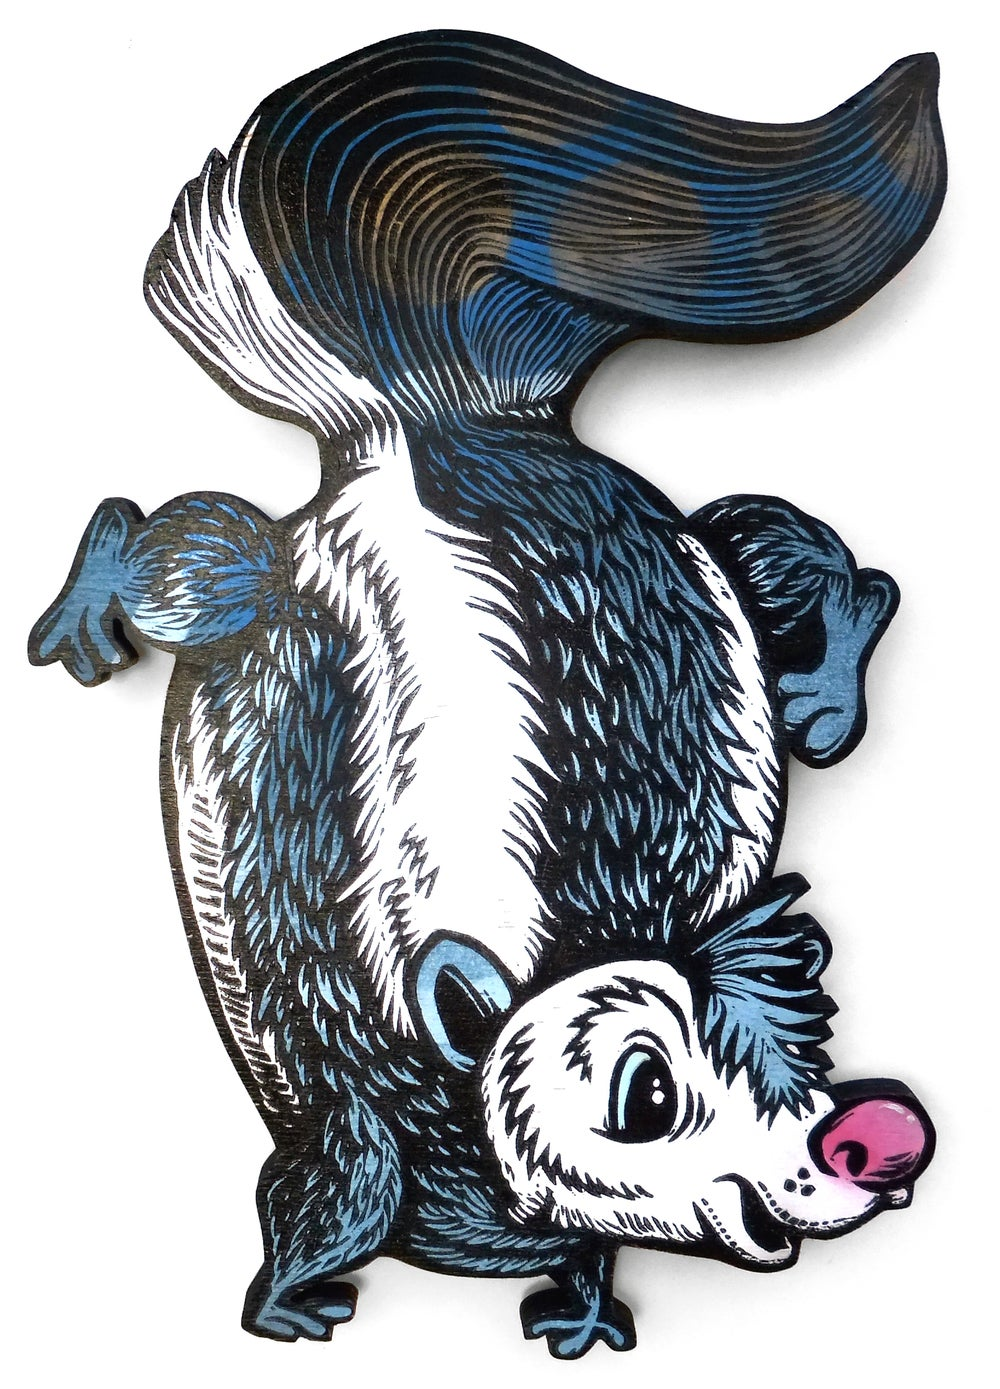 Skunk Print on Wood **FREE SHIPPING**